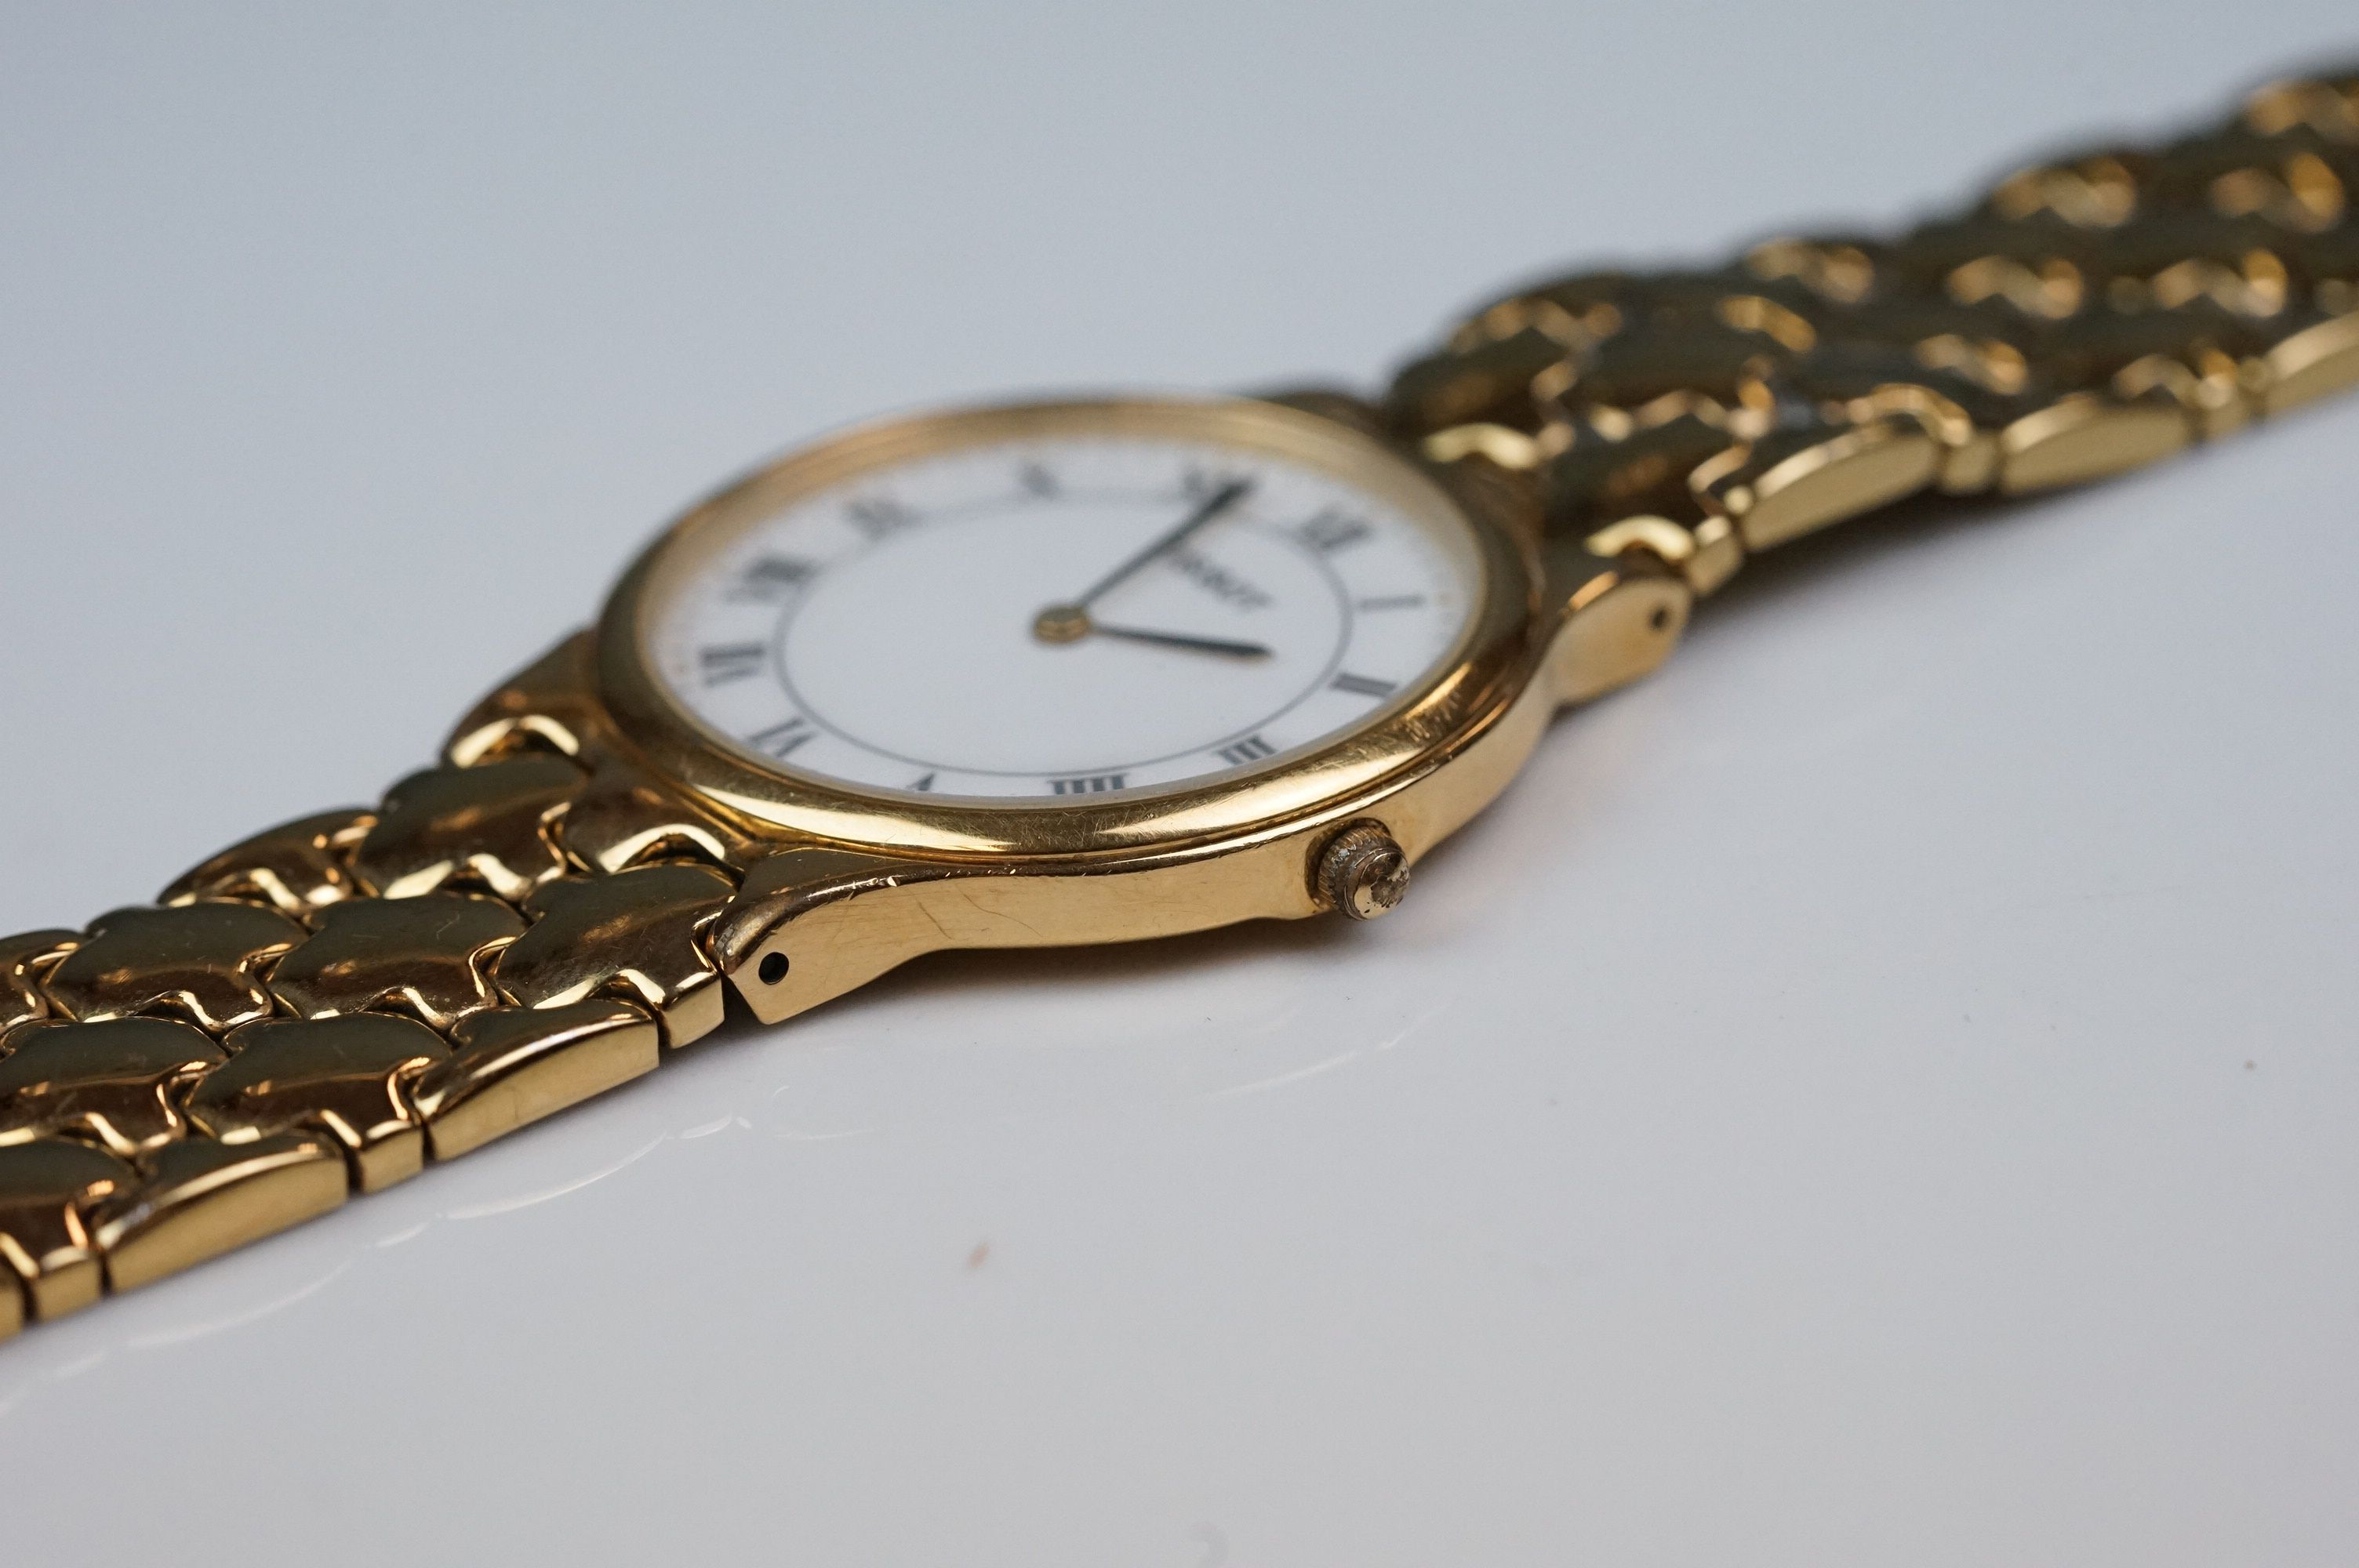 Tissot K250 gold plated dress watch - Image 4 of 10